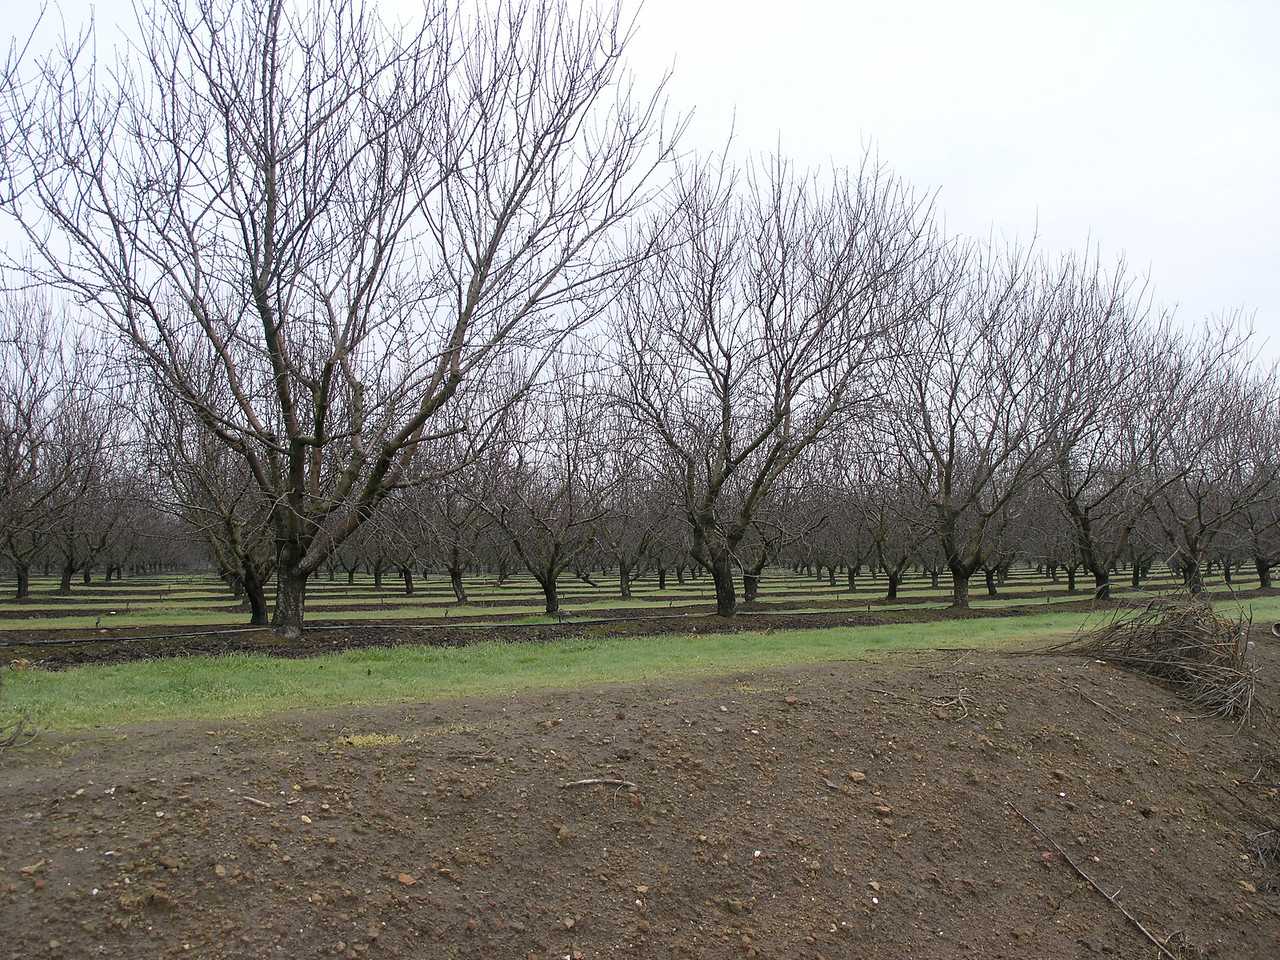 Almond trees along a road east of Modesto.  30 years ago this was dairy country until the price of almonds made the cost of preparing the dairy land for almonds profitable. At a guess this is about 5 or 6 years old and just becoming full producing.